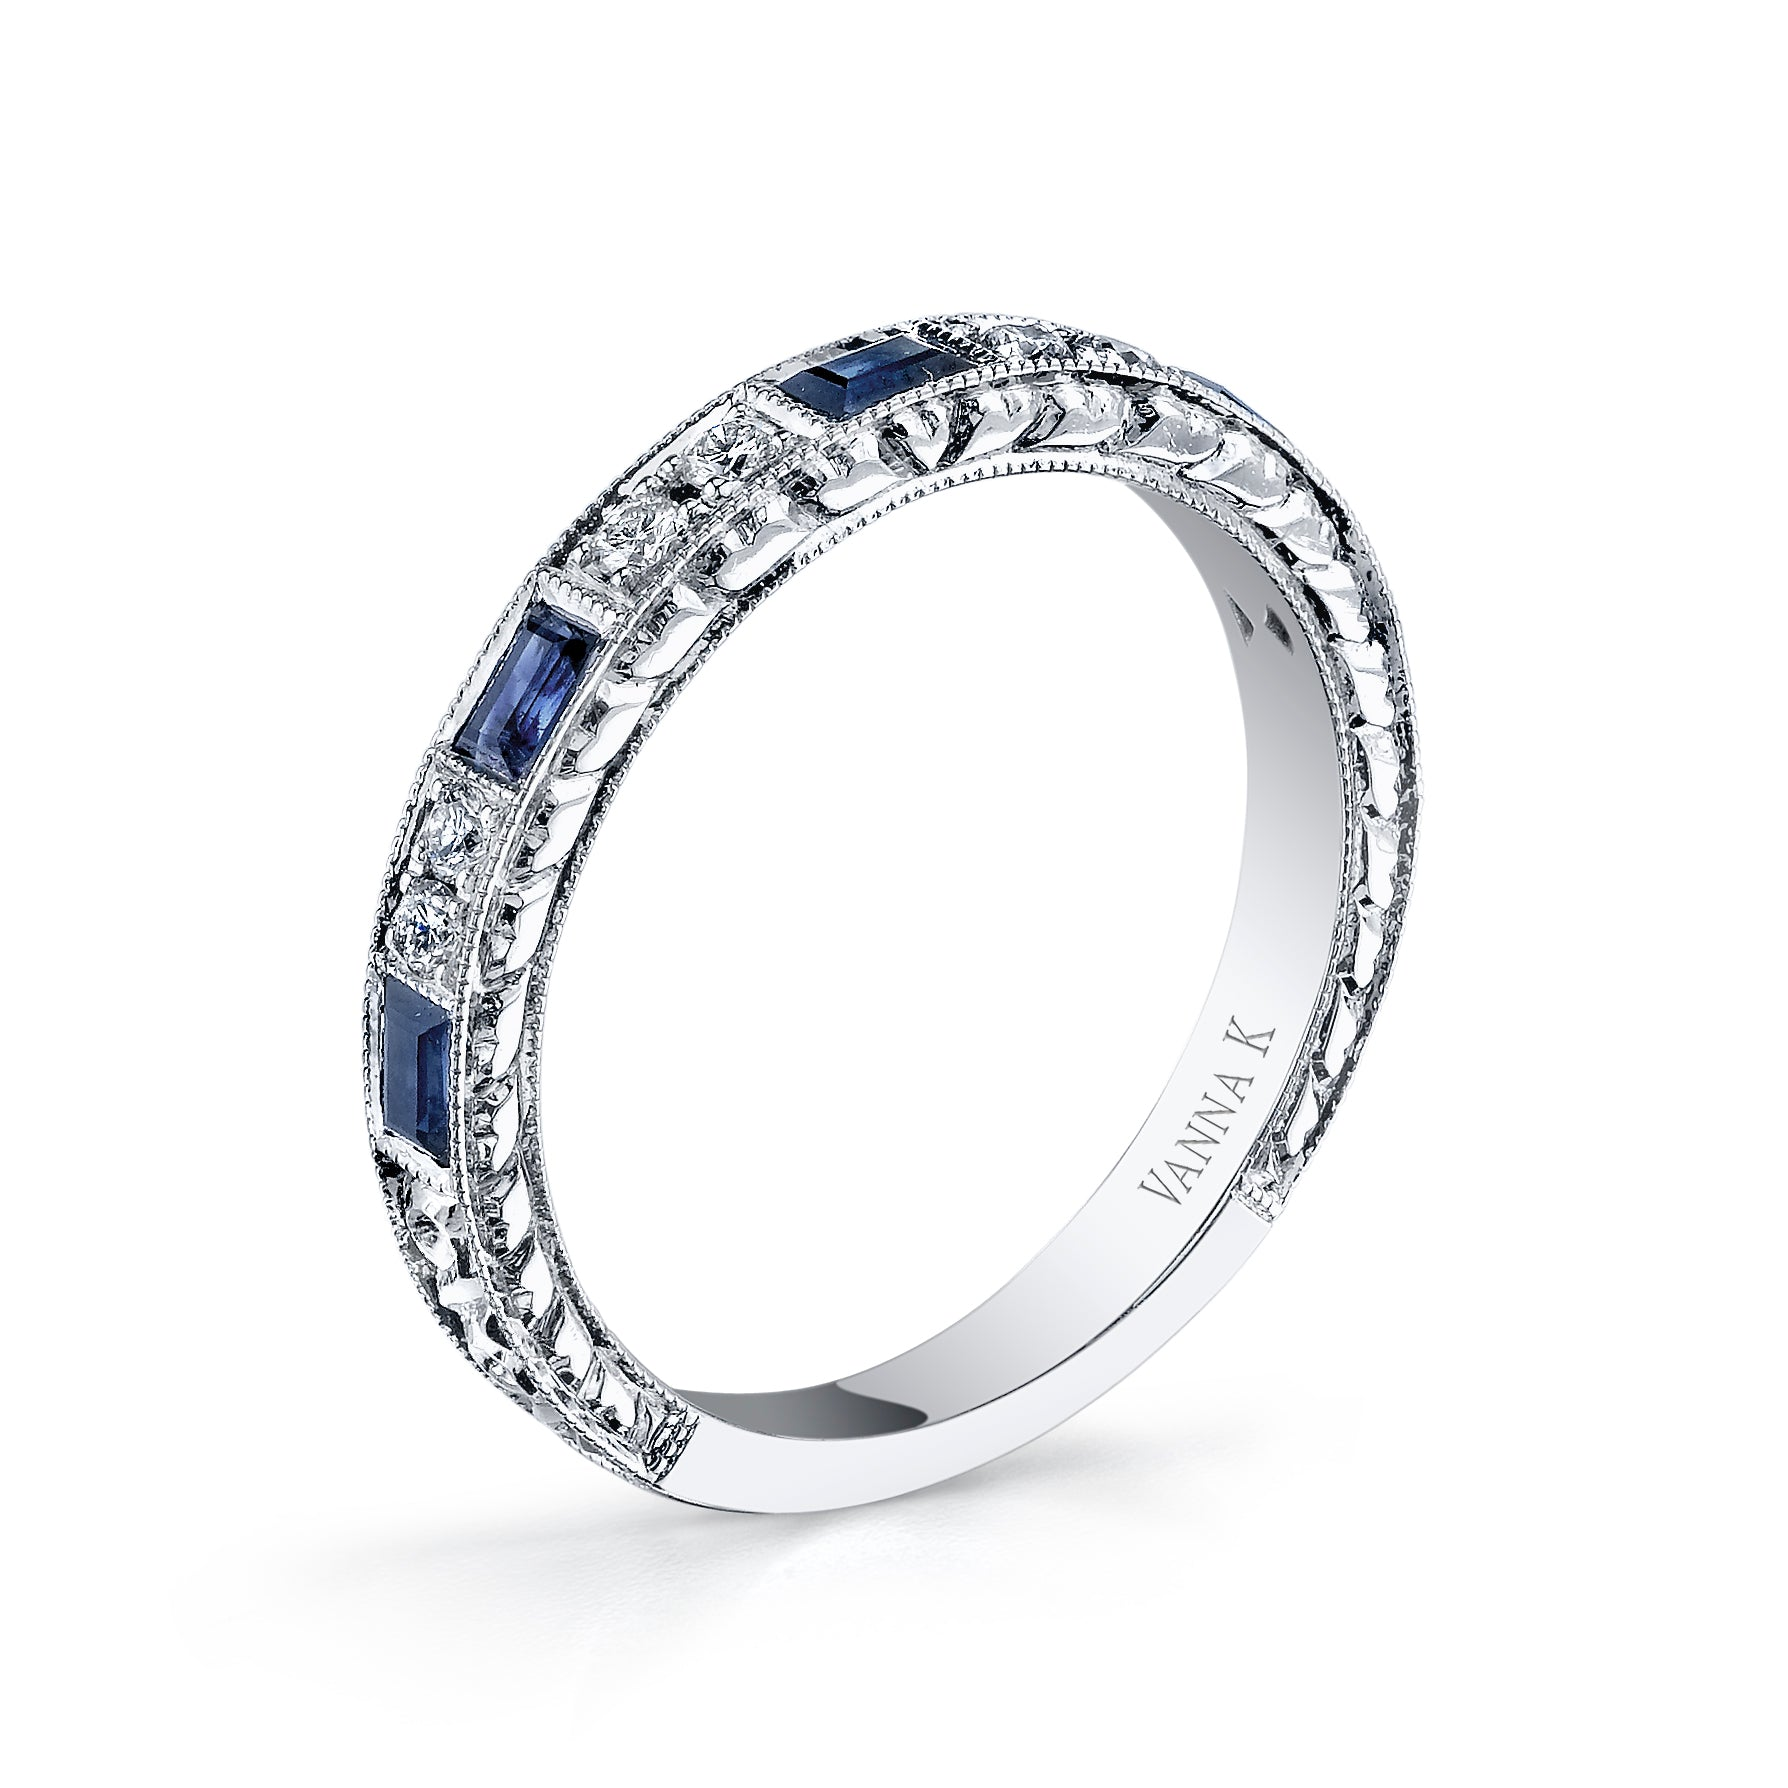 Hand Engraved Perfect Profile Diamond Ring Style 18BND00631S